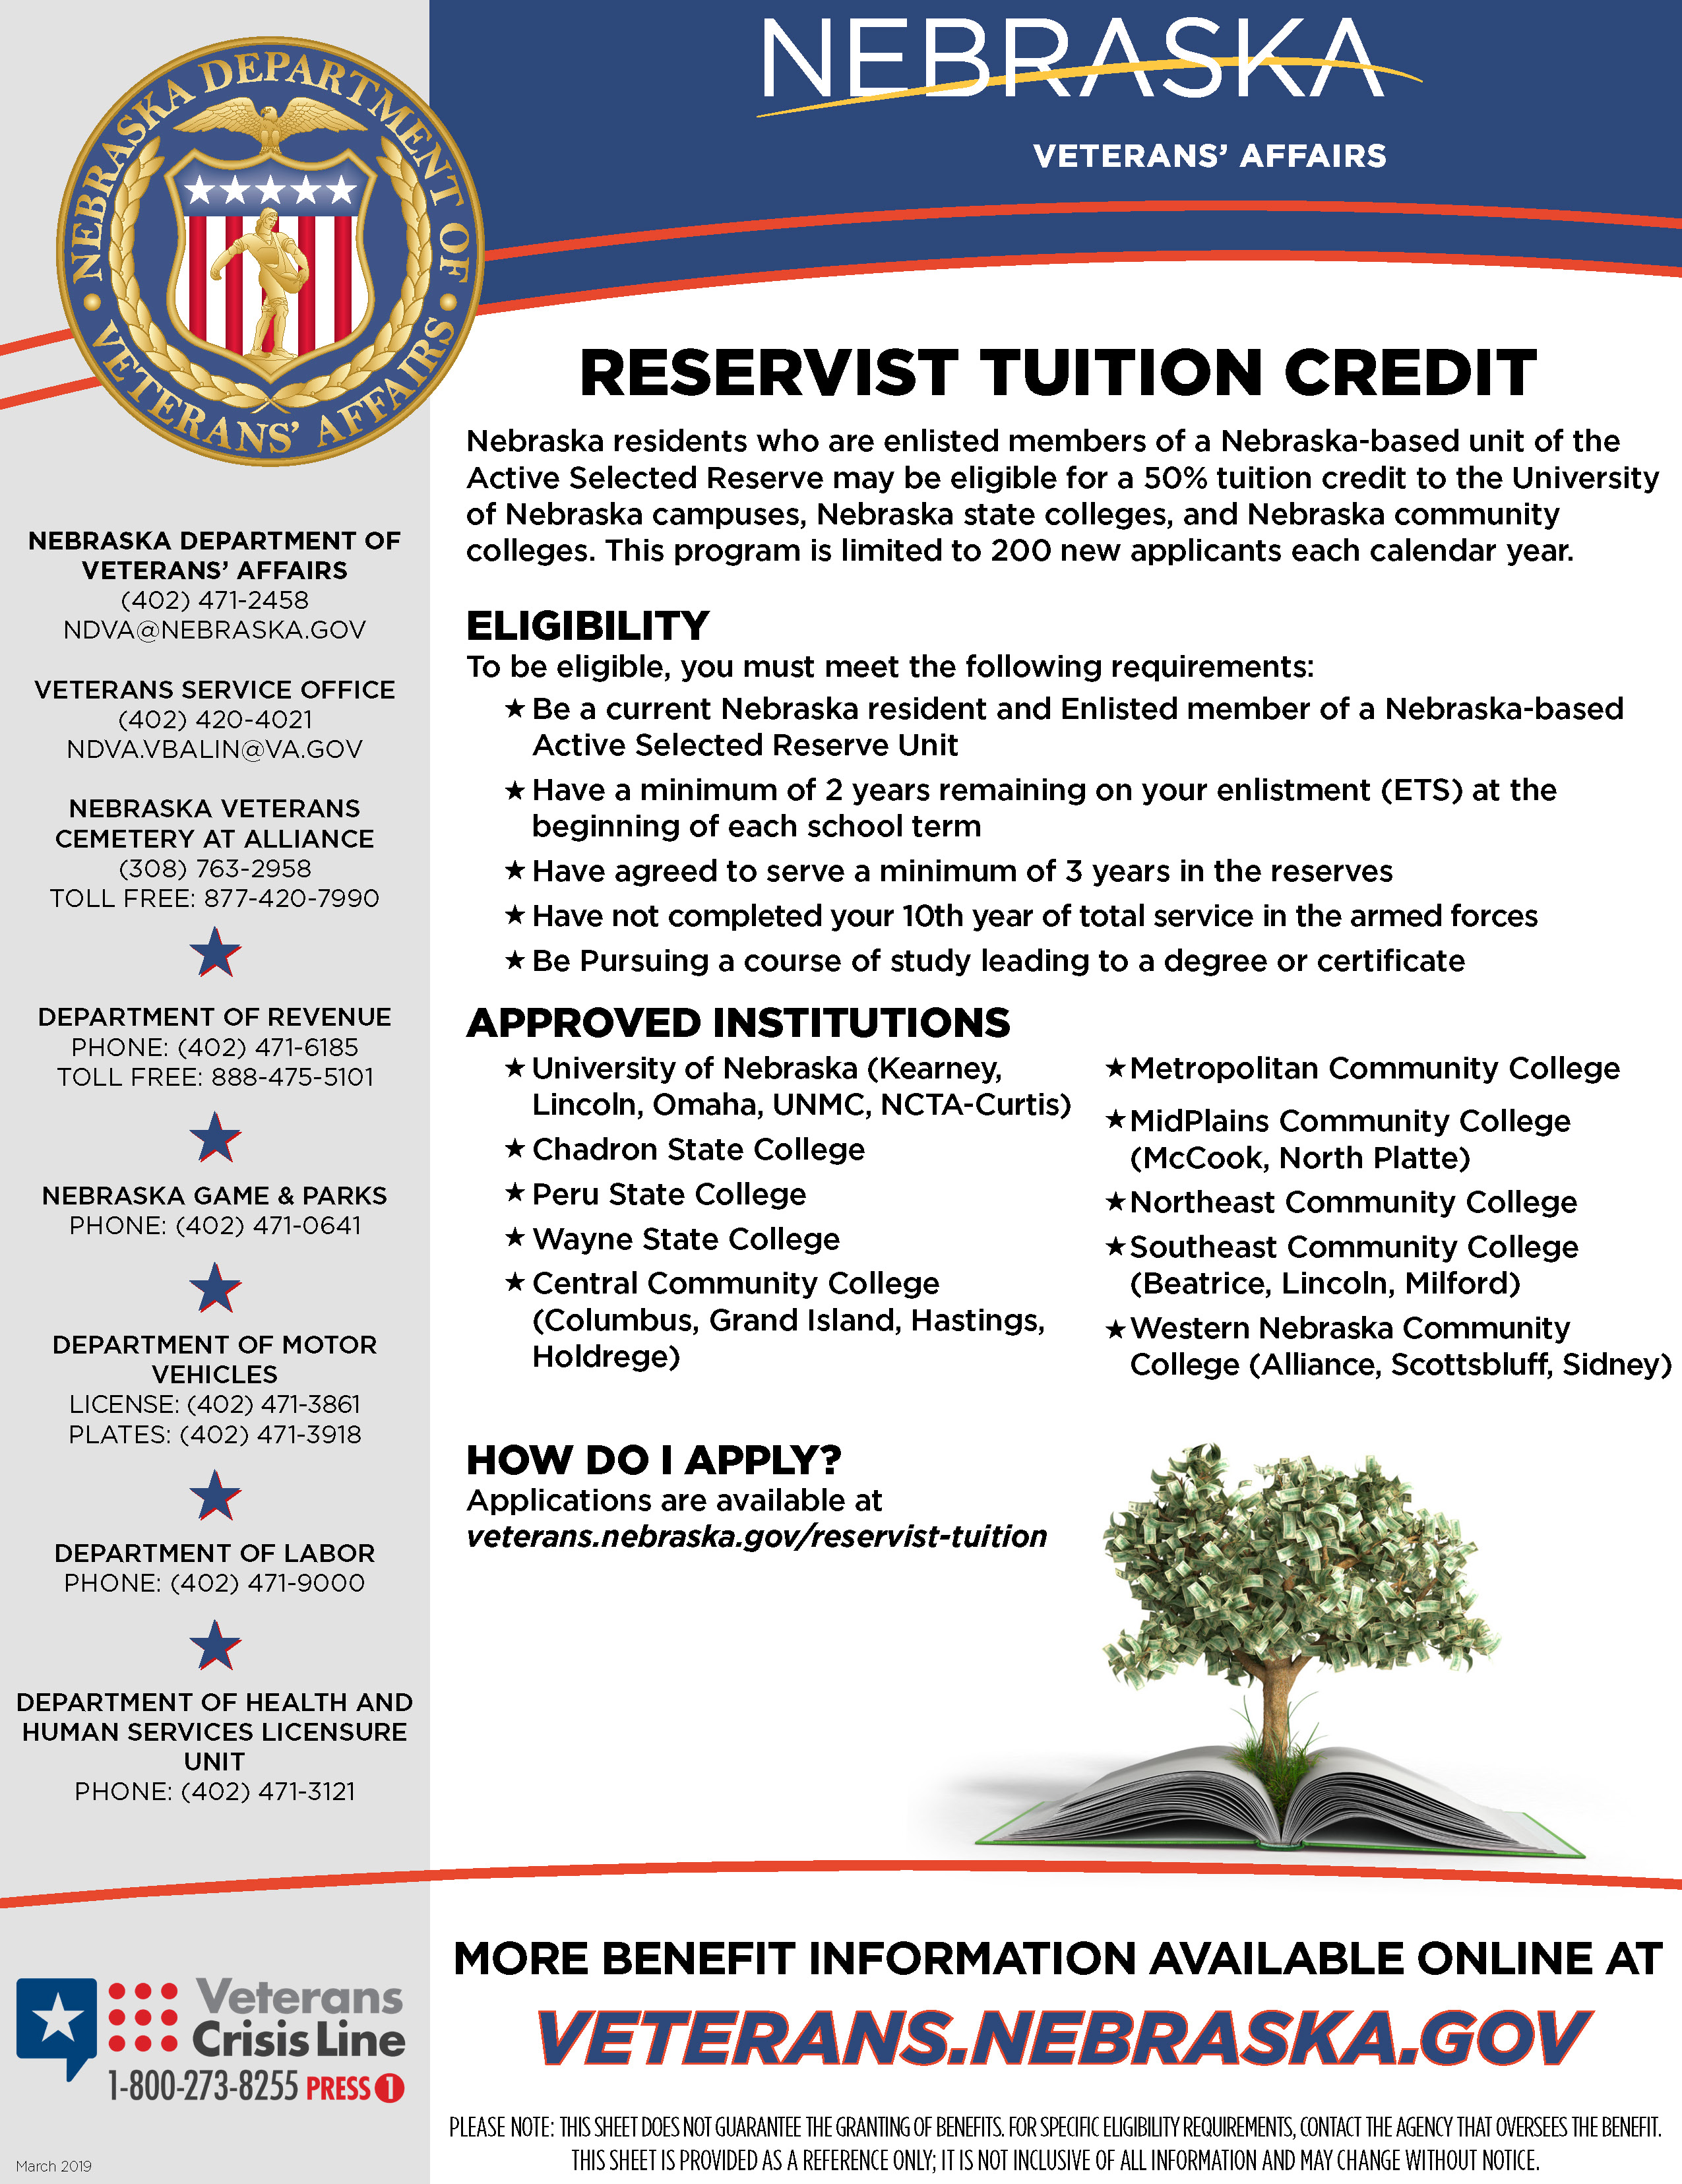 Reservist Tuition Credit Information Sheet